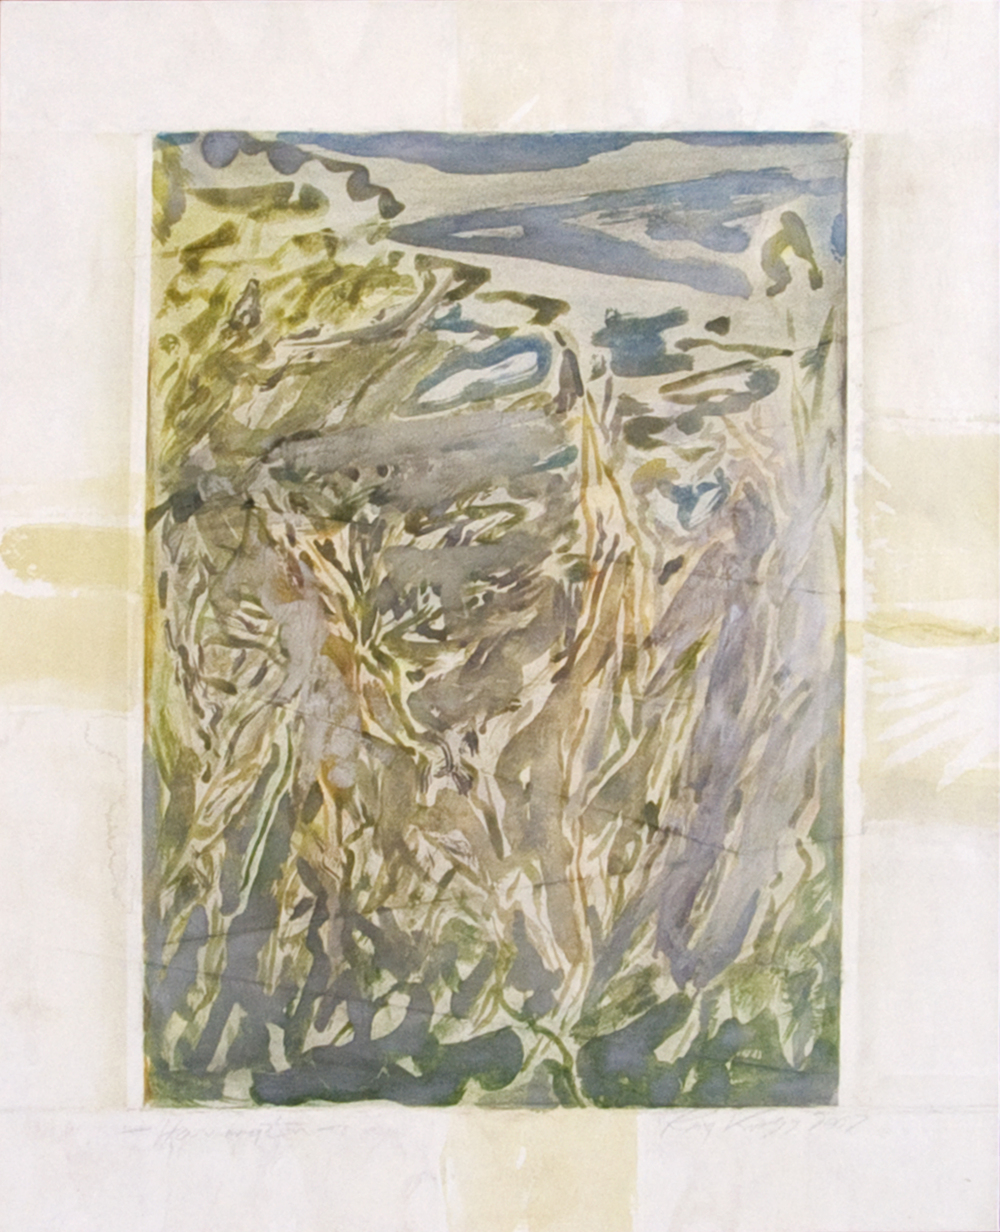 """Harrington"" – Ragweed & Water Grasses, 2007"